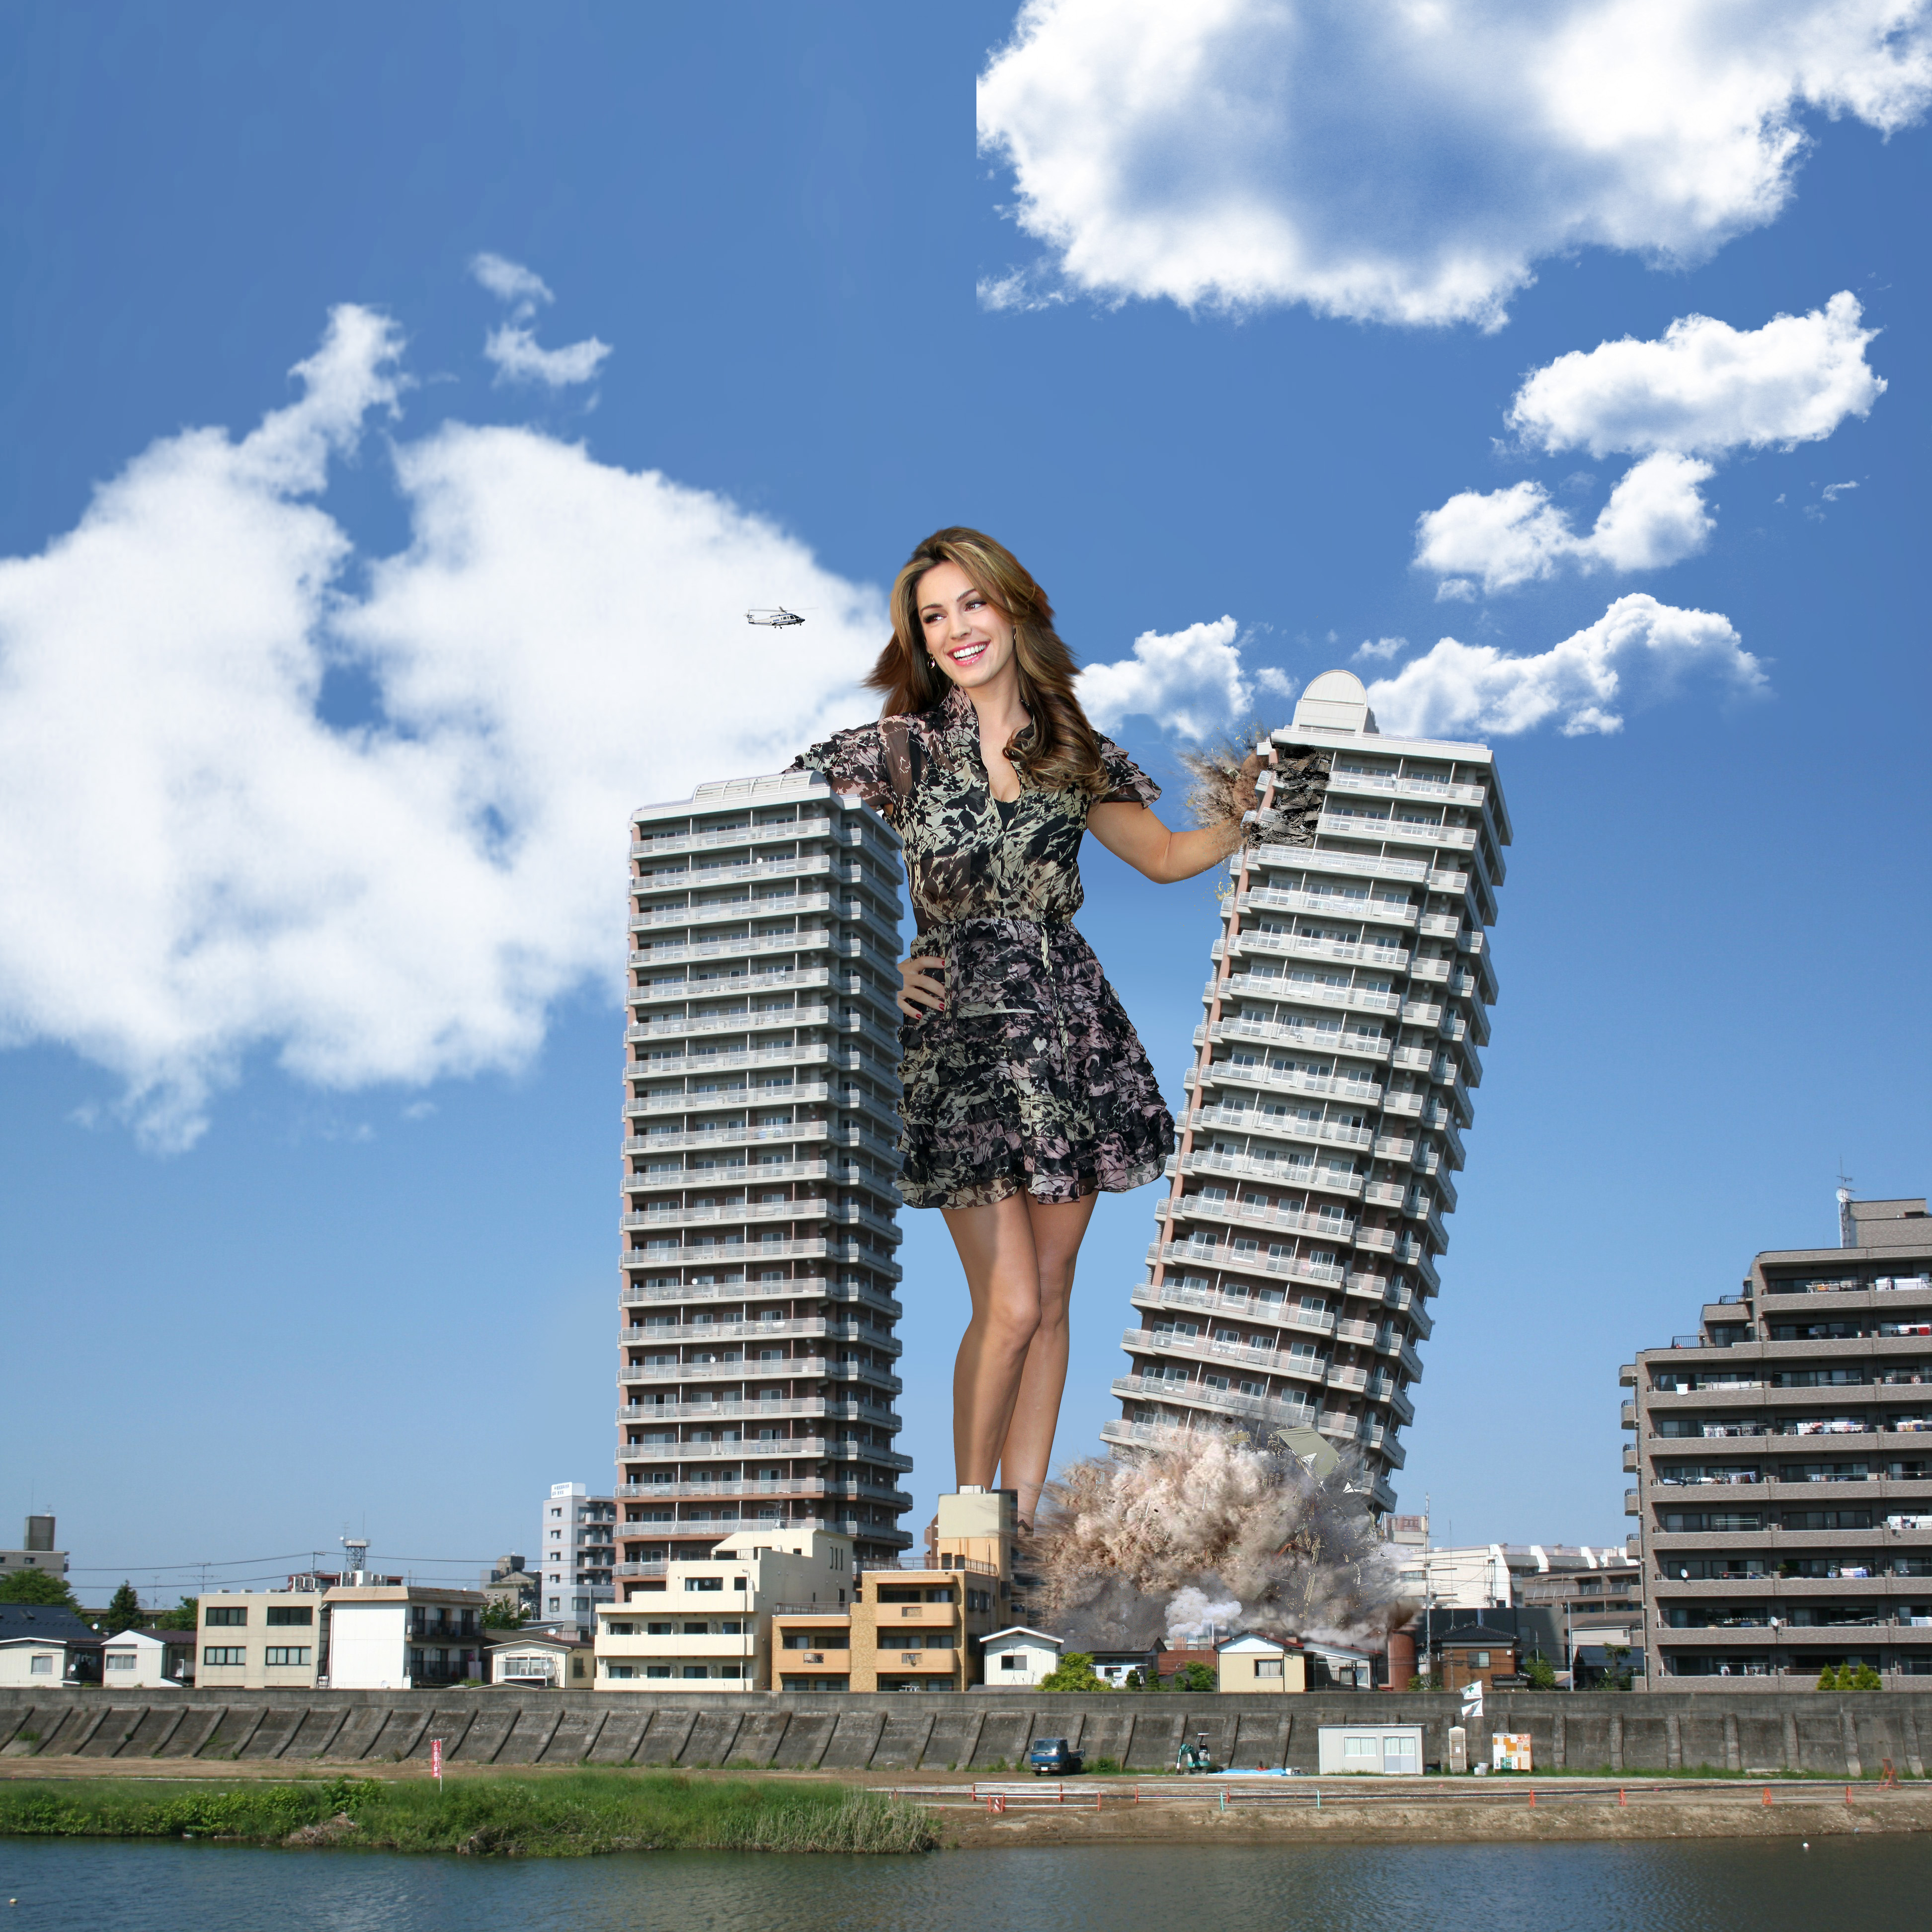 158642 - brunette buildings collage destruction dress giantess helicopter kelly_brook sky smile wonderslug